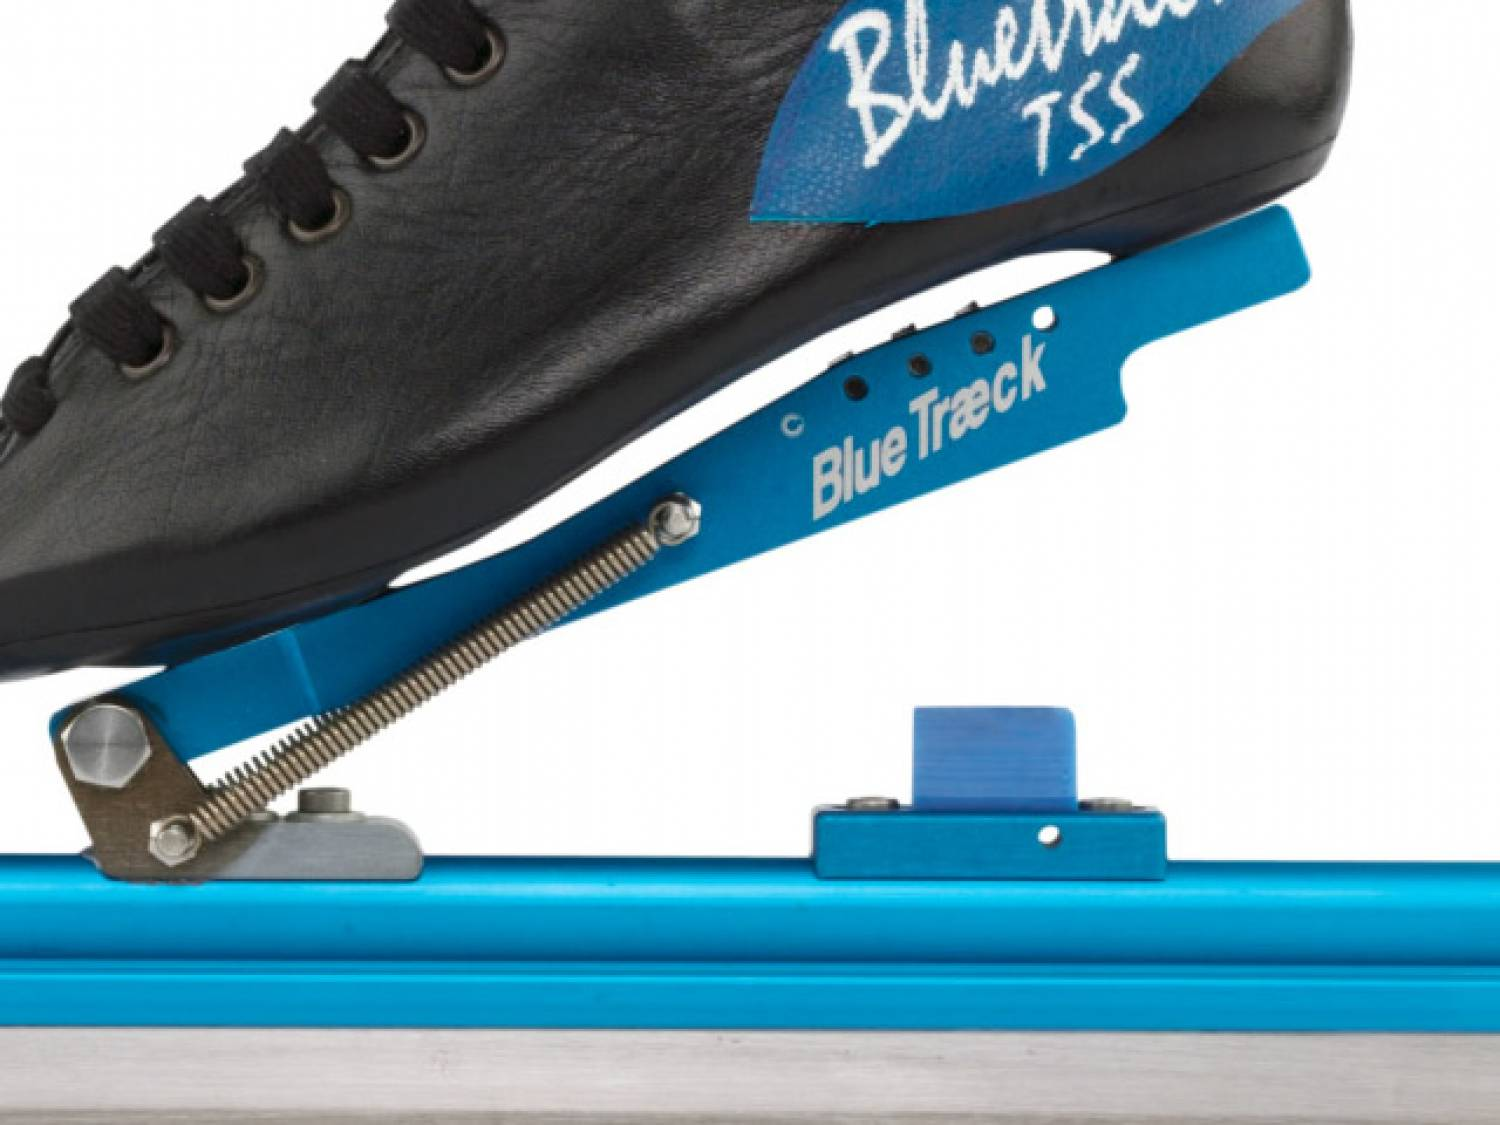 Finn BV Blue Traeck, blade 445mm, L. RVS steel